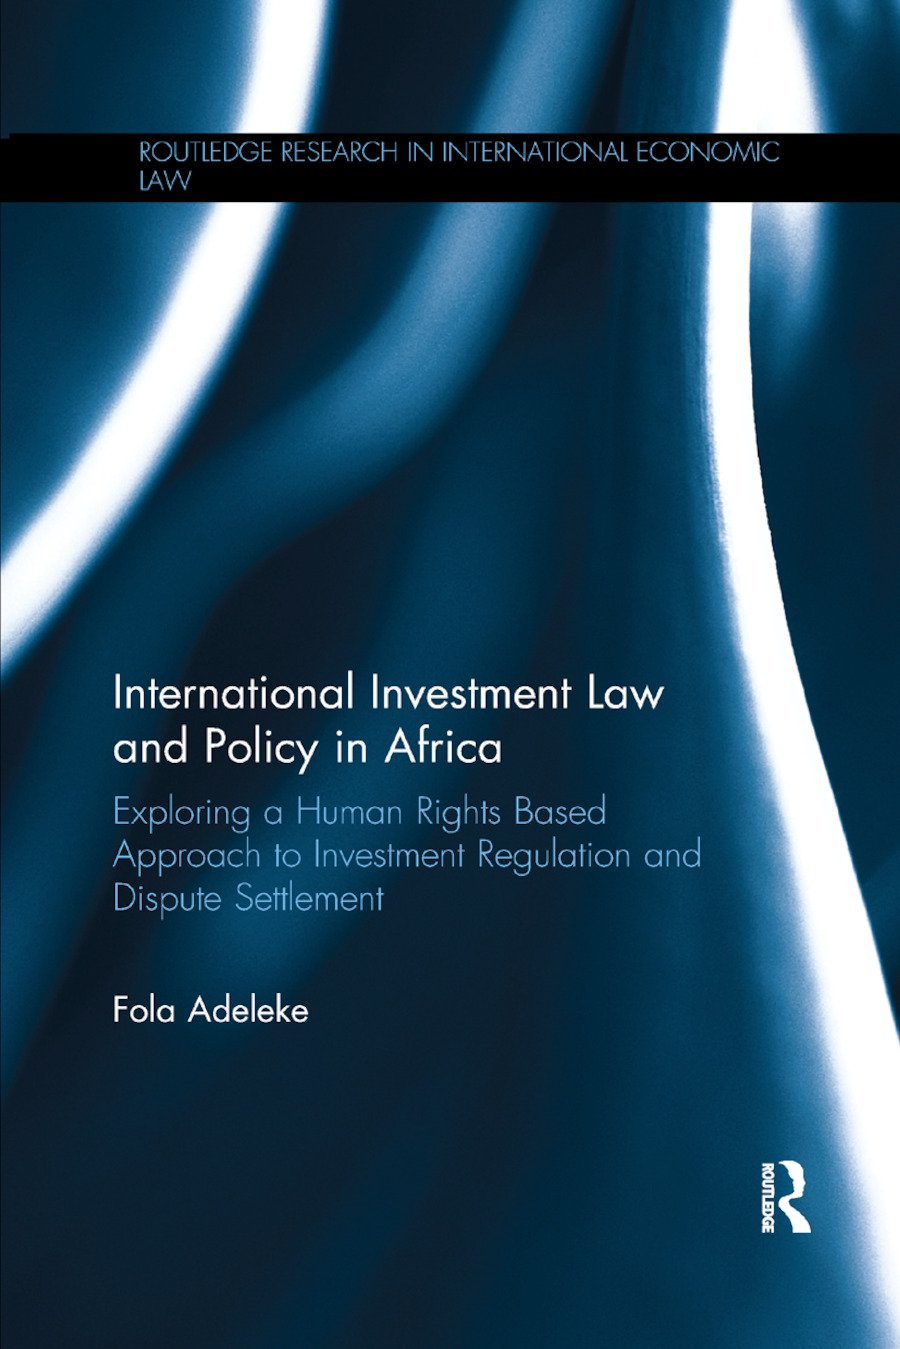 International Investment Law and Policy in Africa: Exploring a Human Rights Based Approach to Investment Regulation and Dispute Settlement book cover